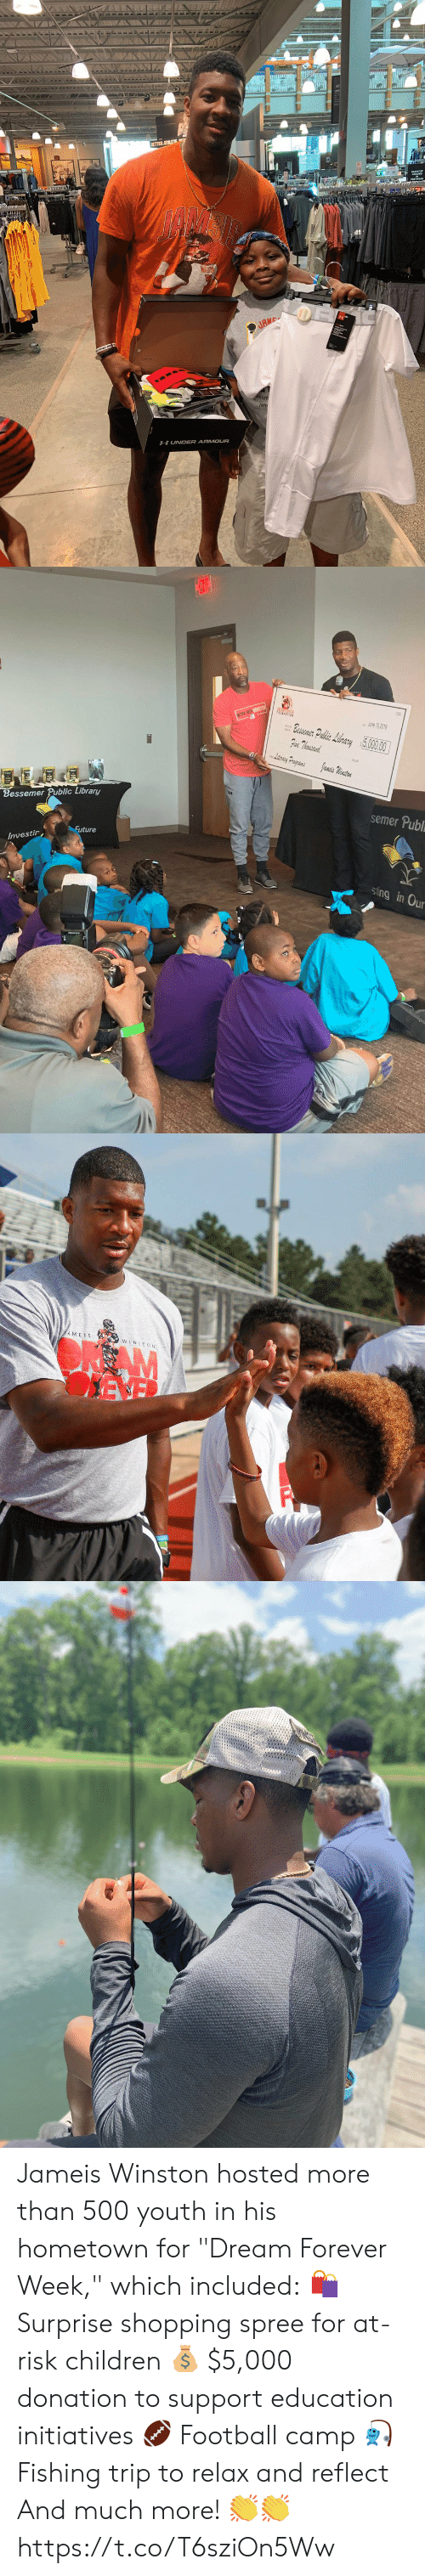 """Children, Football, and Future: BETTER ATHLET  JAM  HUNDER ARMOUR   June 19,2019  esenc: Public Liberary  Five Thousand  5000  Literacy Presgams  Yameis Winston  semer Publ  Bessemer Public Library  Future  Investir  sting in Our   AMEIS  WINSTON  AM Jameis Winston hosted more than 500 youth in his hometown for """"Dream Forever Week,"""" which included:  🛍 Surprise shopping spree for at-risk children 💰 $5,000 donation to support education initiatives 🏈 Football camp 🎣 Fishing trip to relax and reflect  And much more! 👏👏 https://t.co/T6sziOn5Ww"""